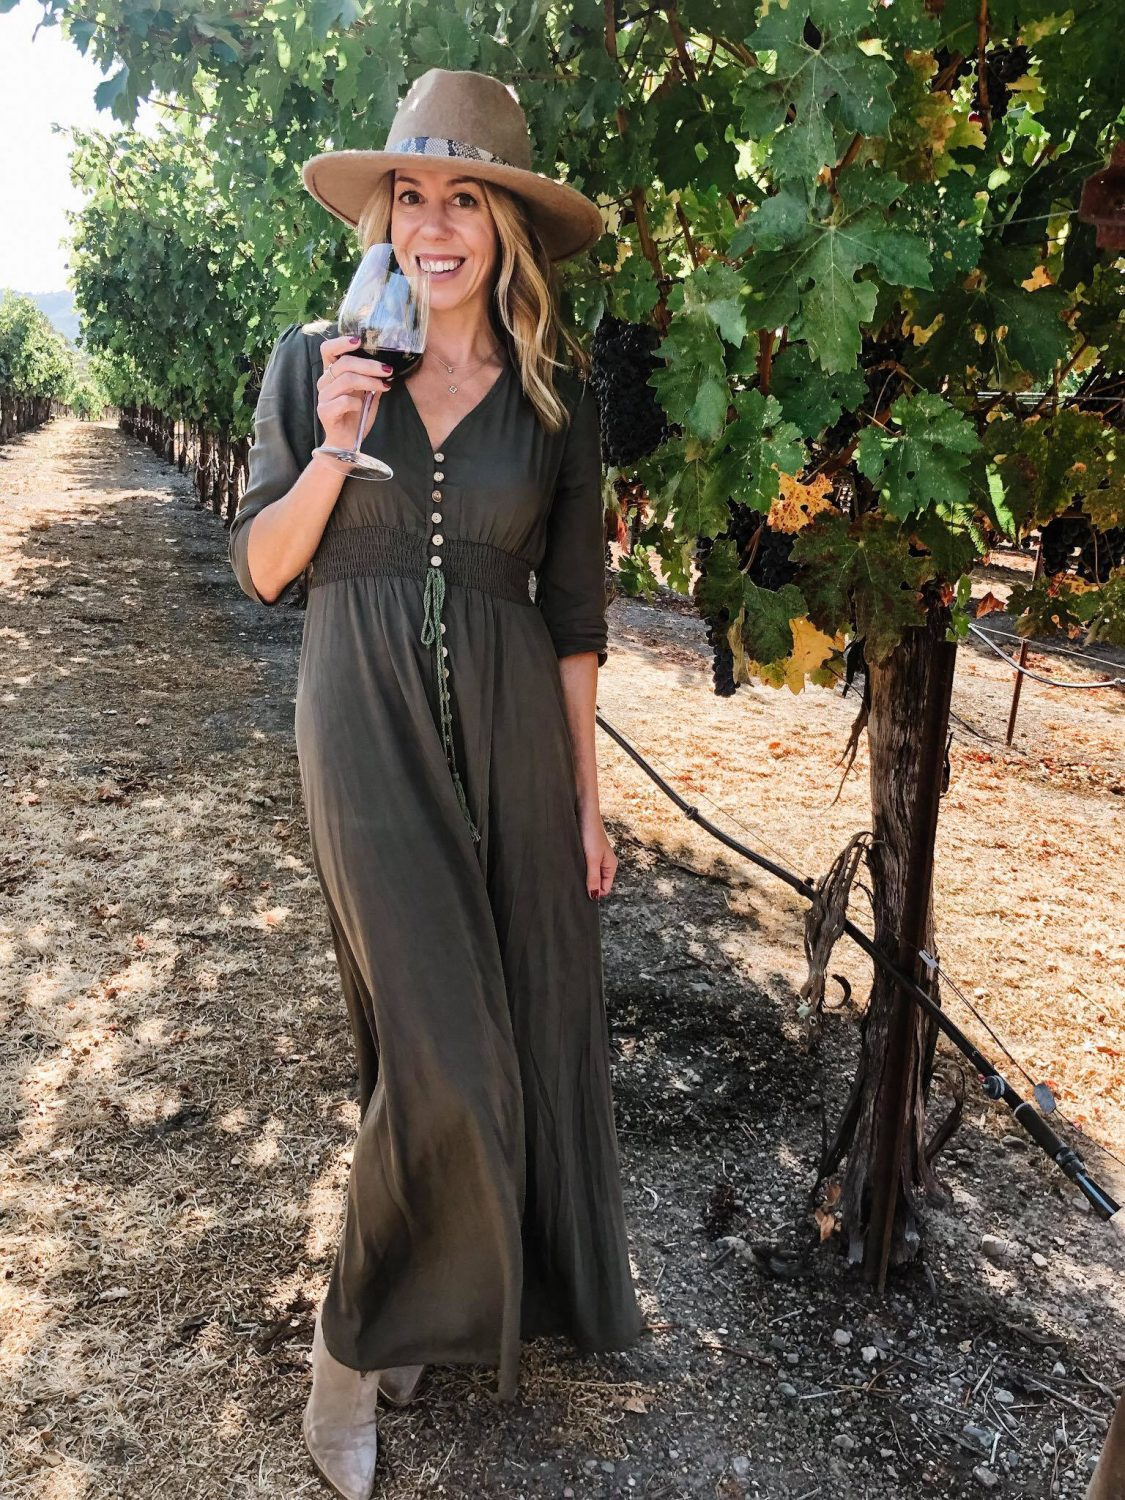 The motherchic wearing a maxi dress in wine country